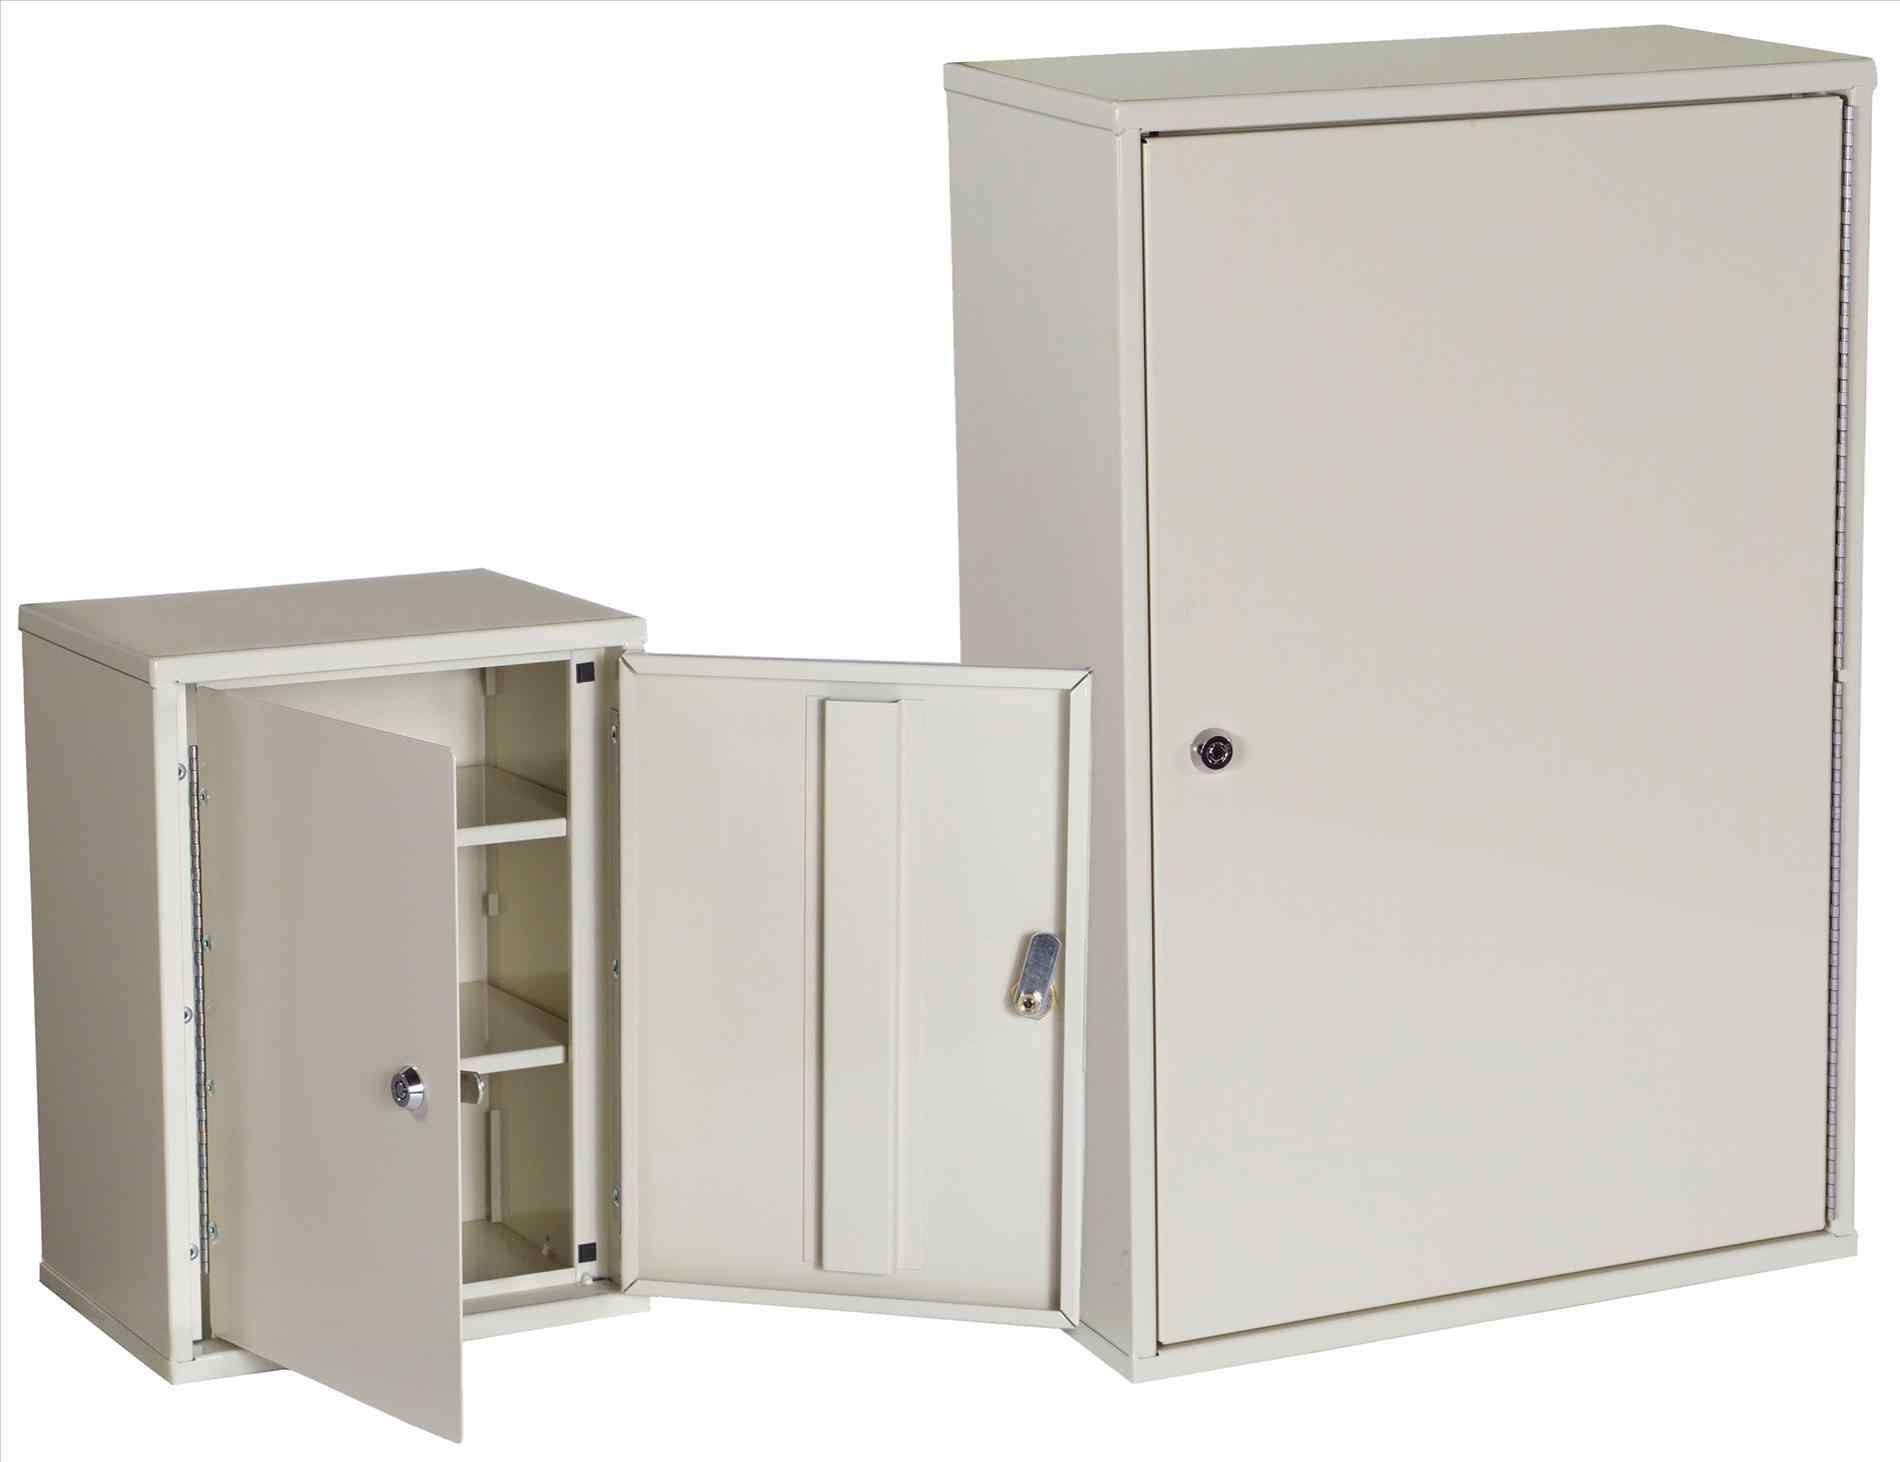 Cabinets Media Double Door Cabinet Lock Storage Cabinet With Locking